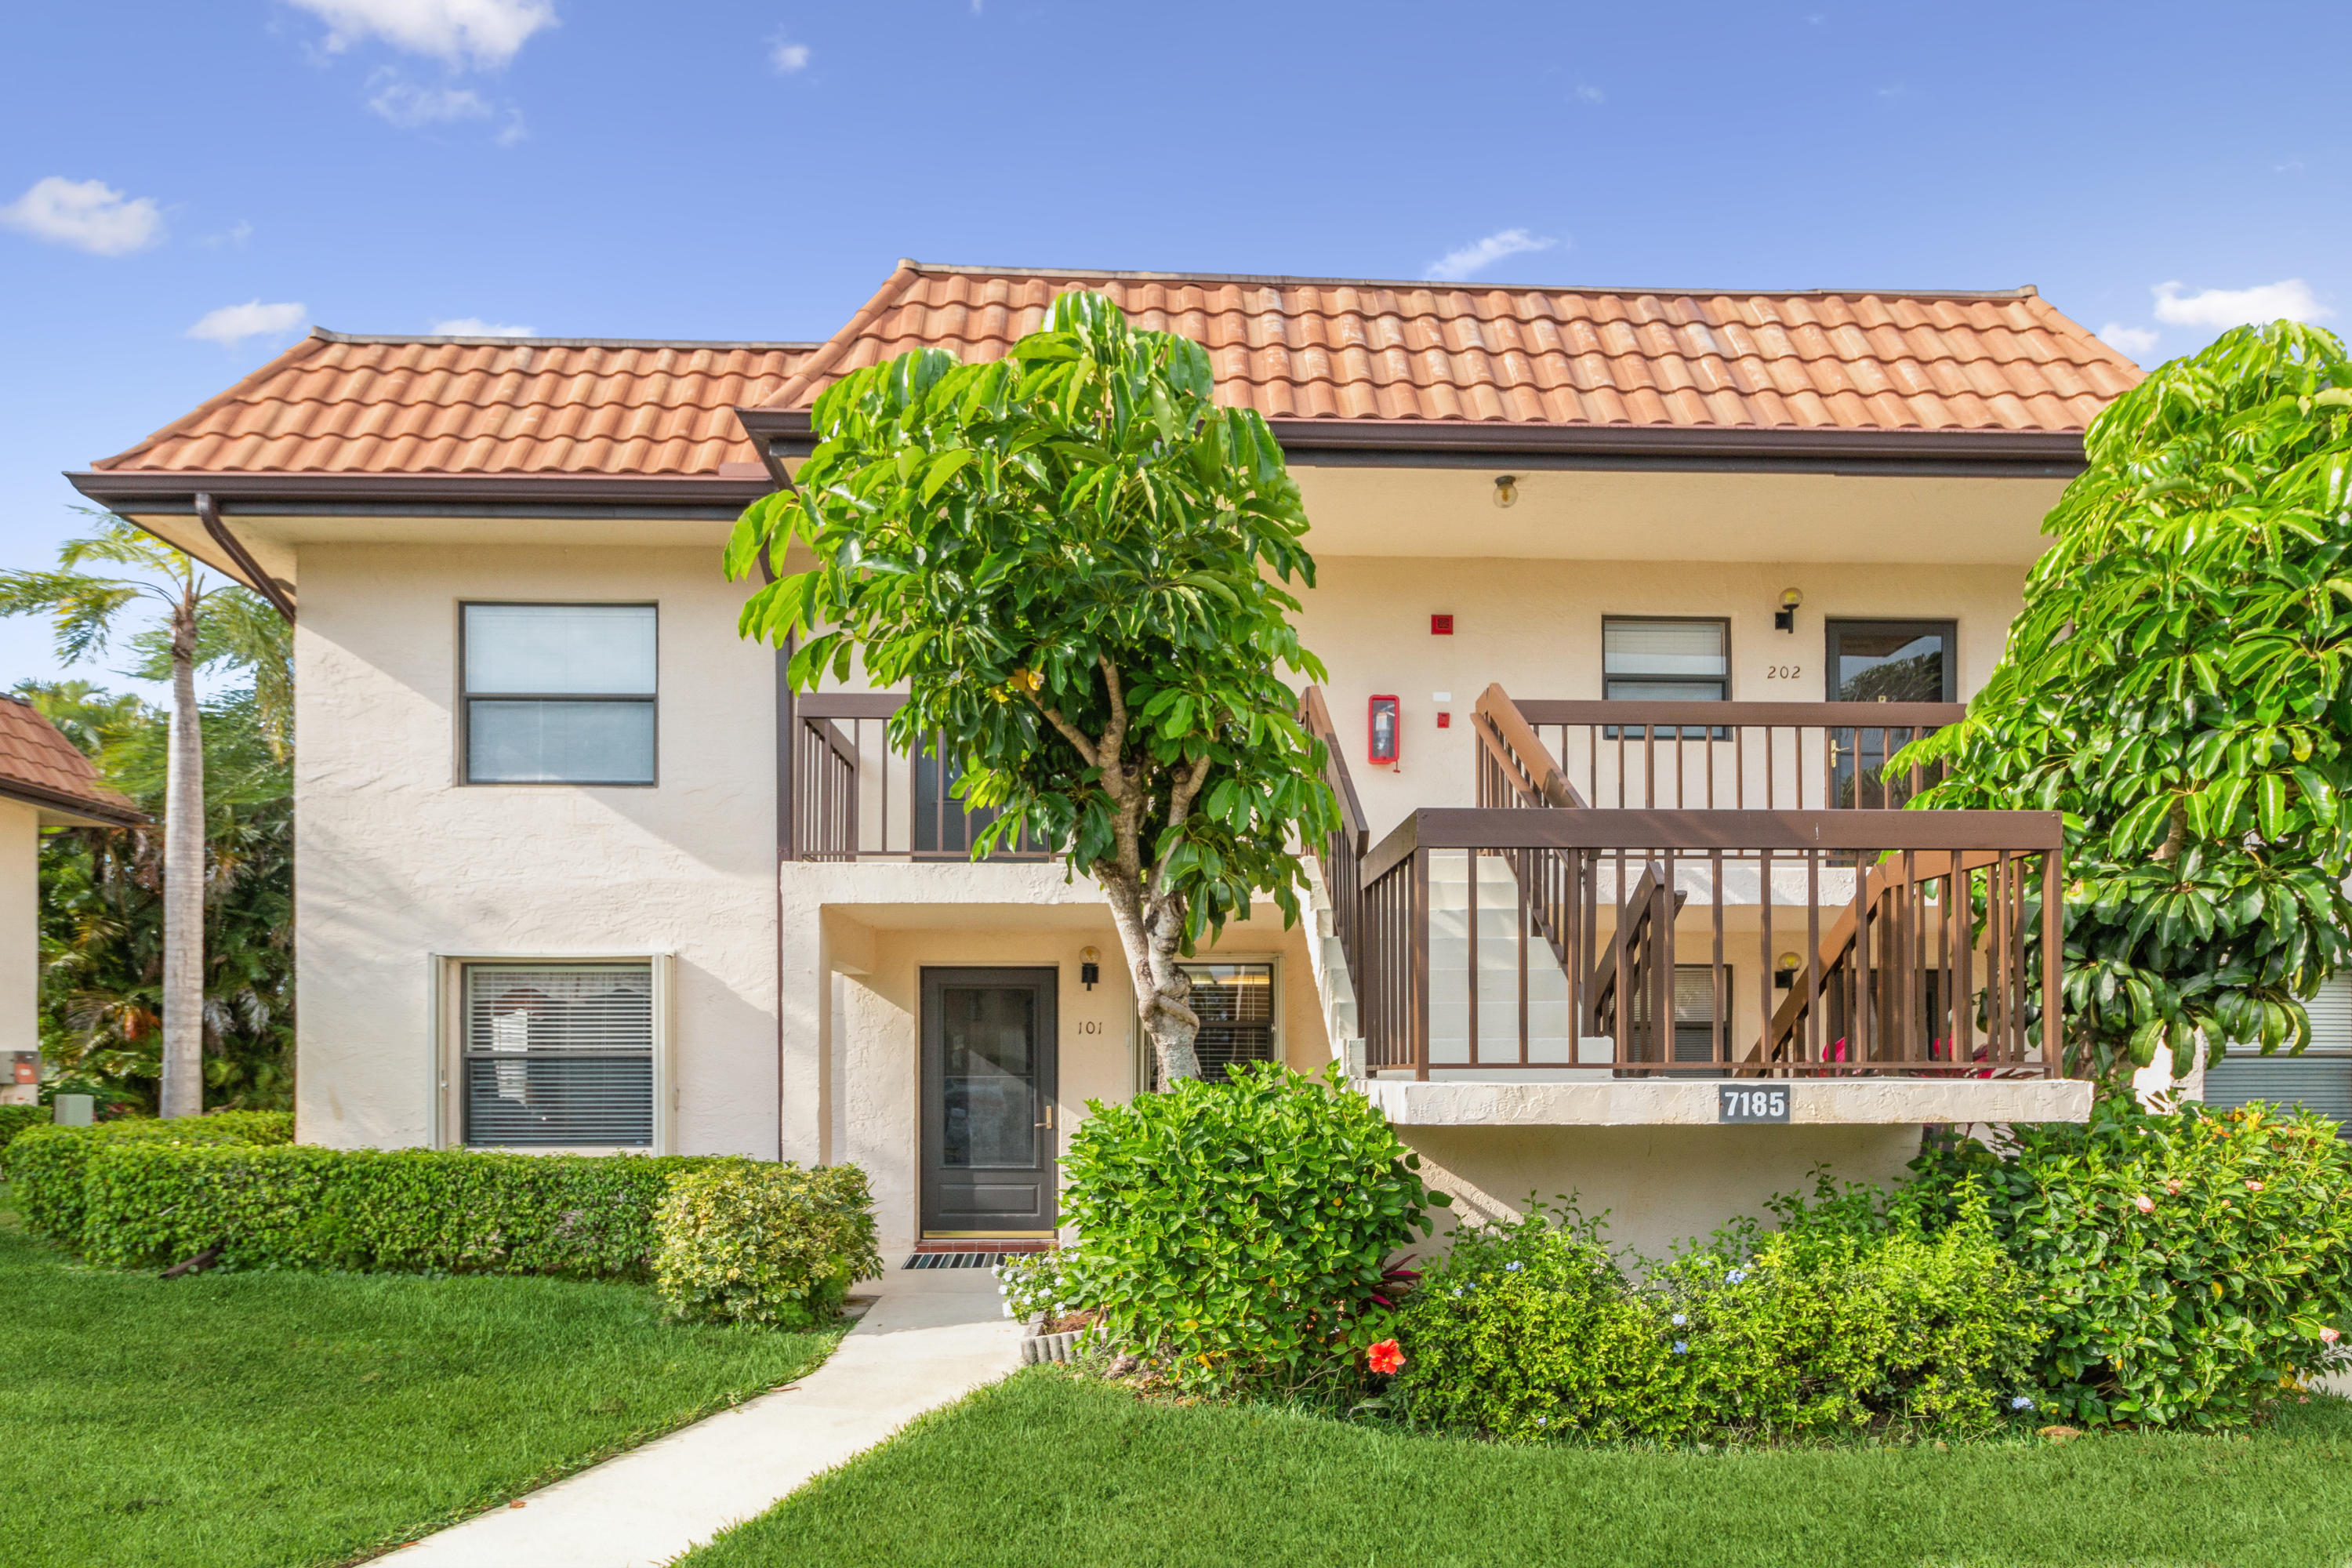 7185  Golf Colony Court 101 For Sale 10703540, FL